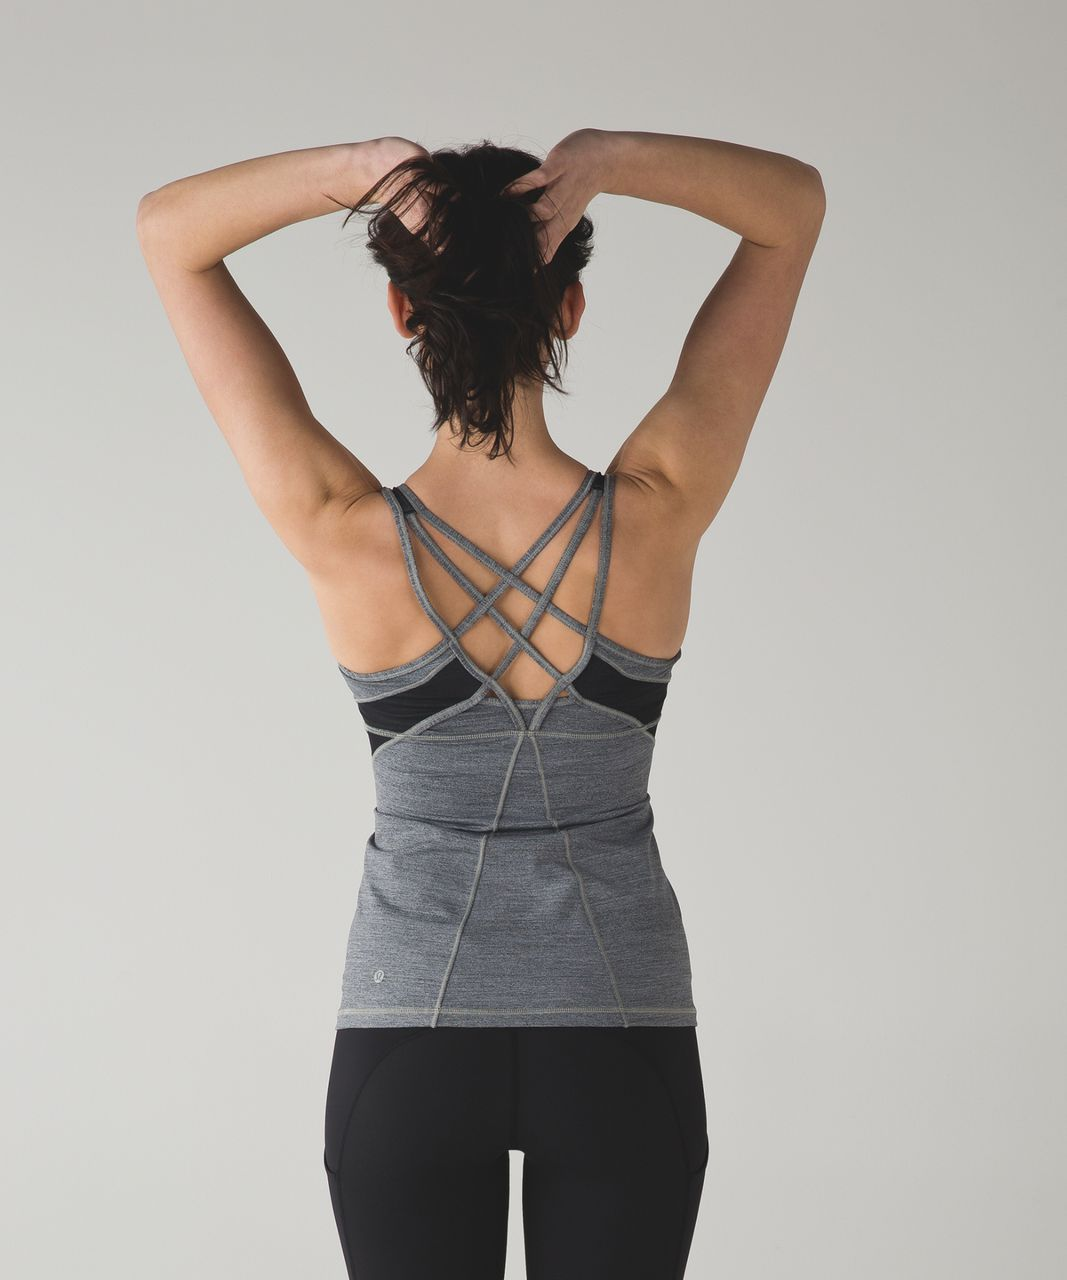 Lululemon Strap It Like It's Hot Tank - Space Dye Camo Black Dark Slate